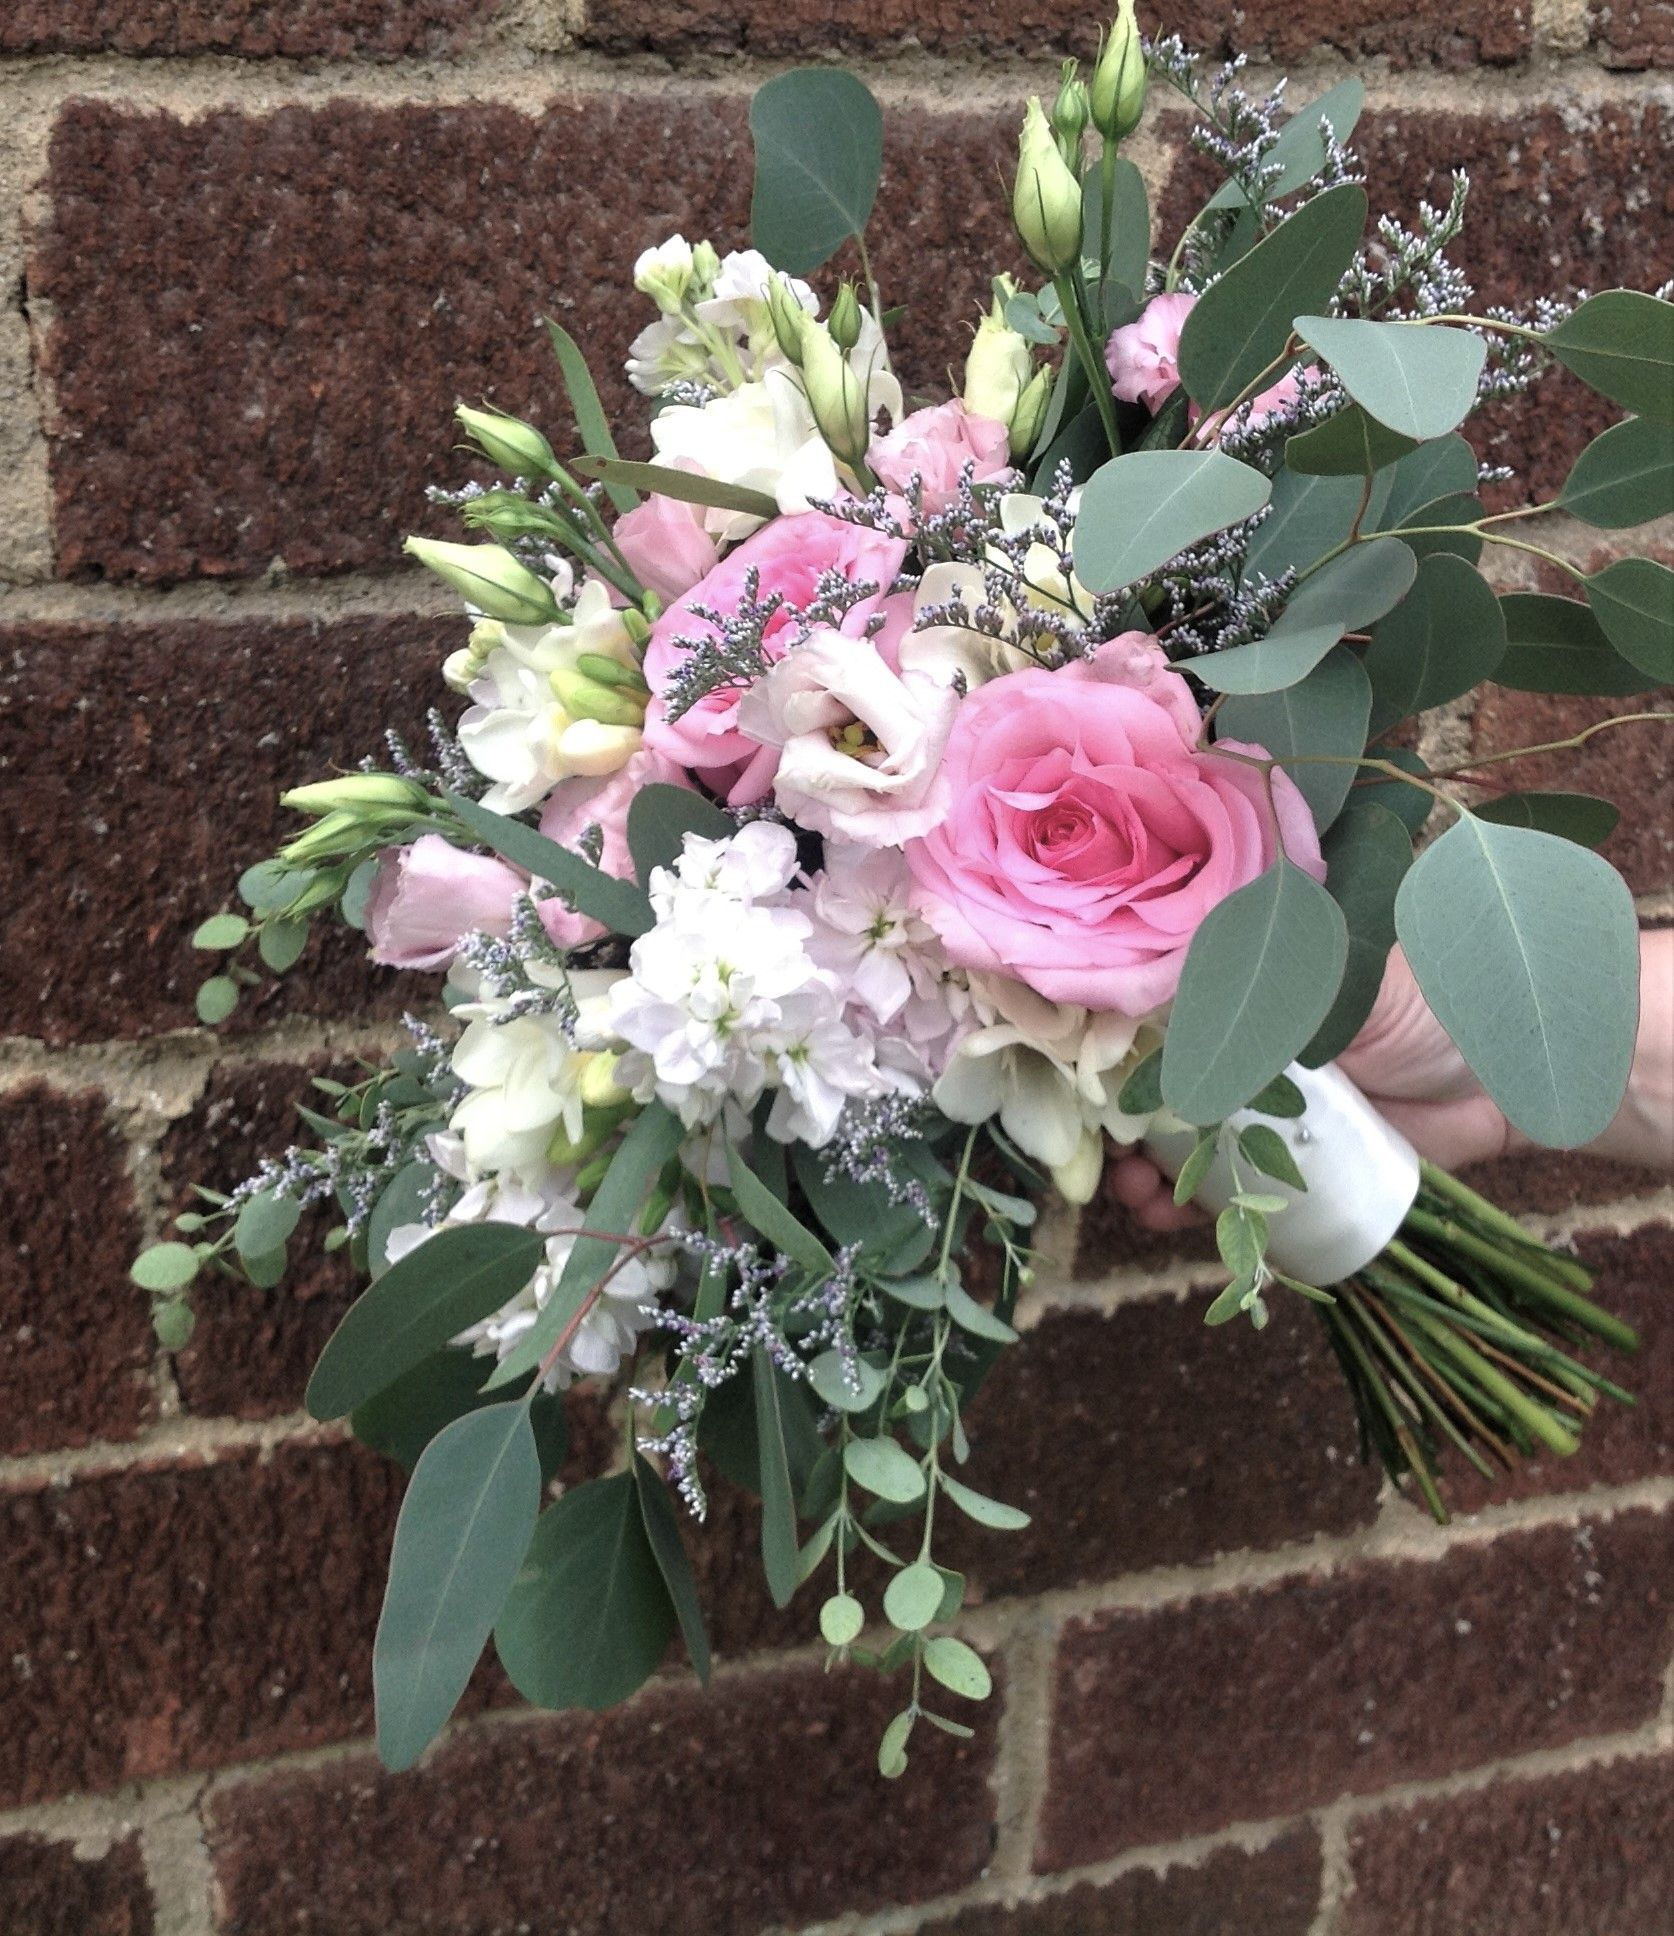 spring or summer wedding bouquet. designed with pink roses, white